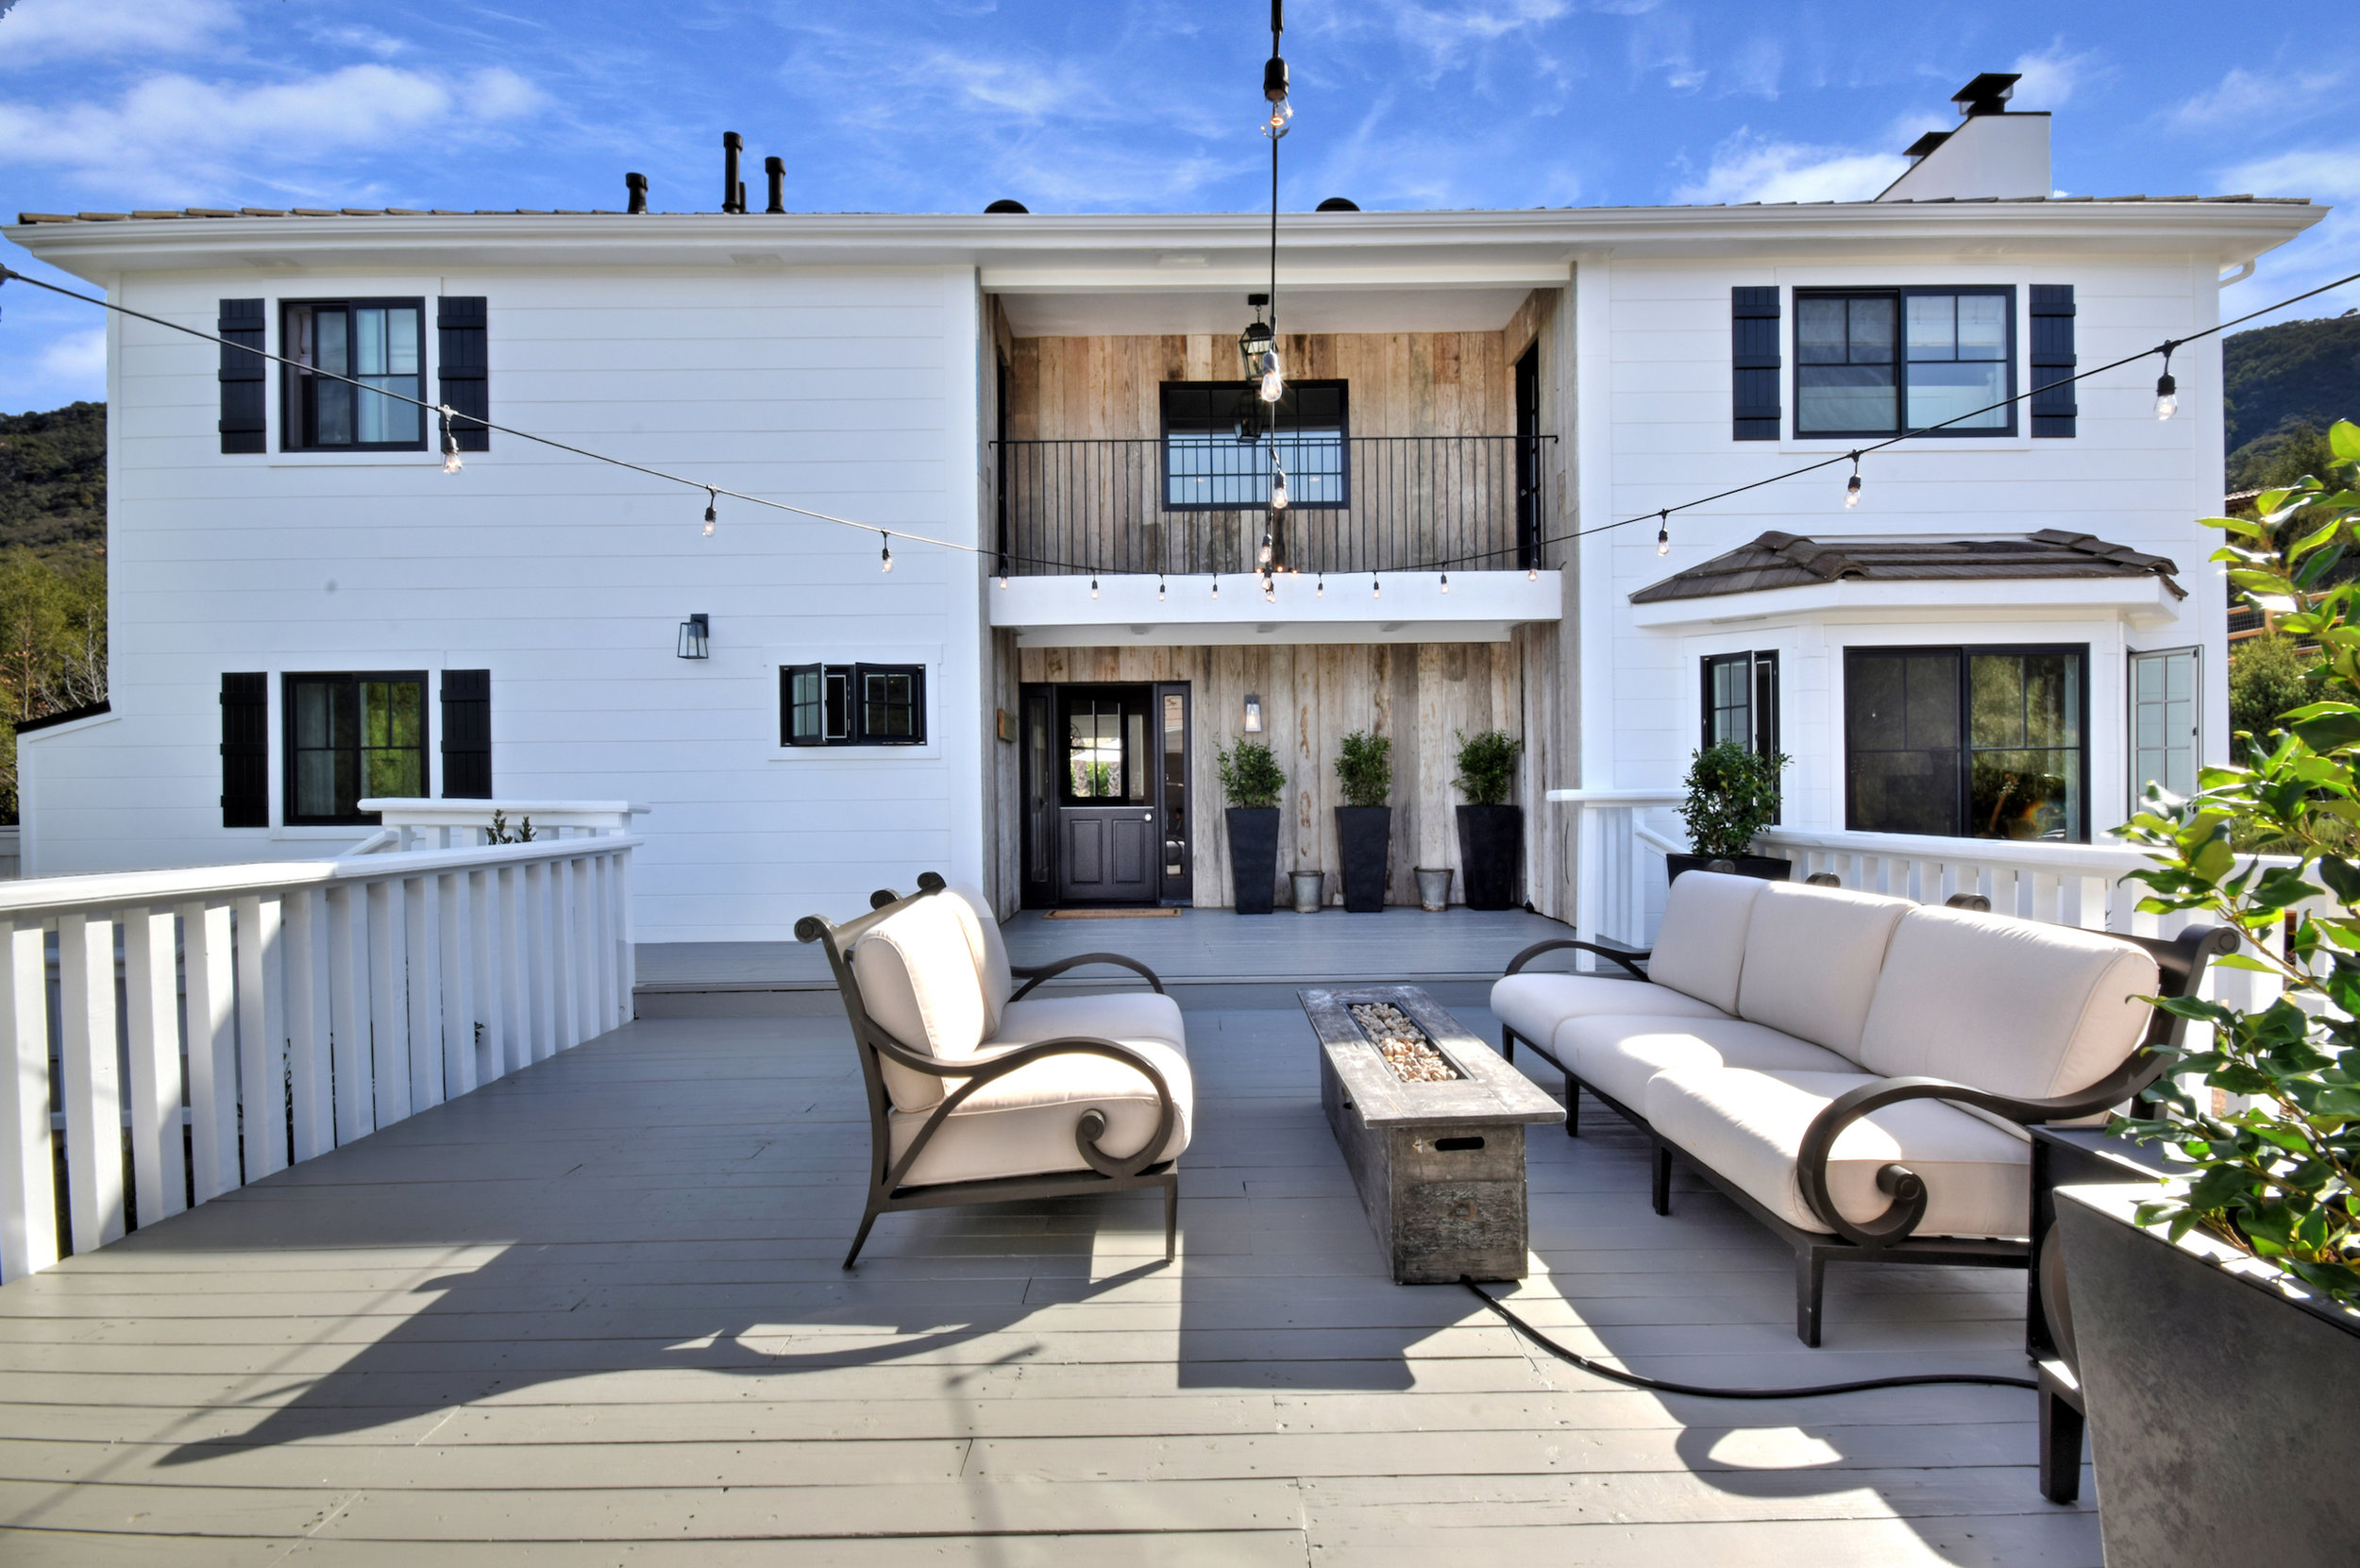 013 Entry 560 Cold Canyon Road For Sale Lease The Malibu Life Team Luxury Real Estate.jpg